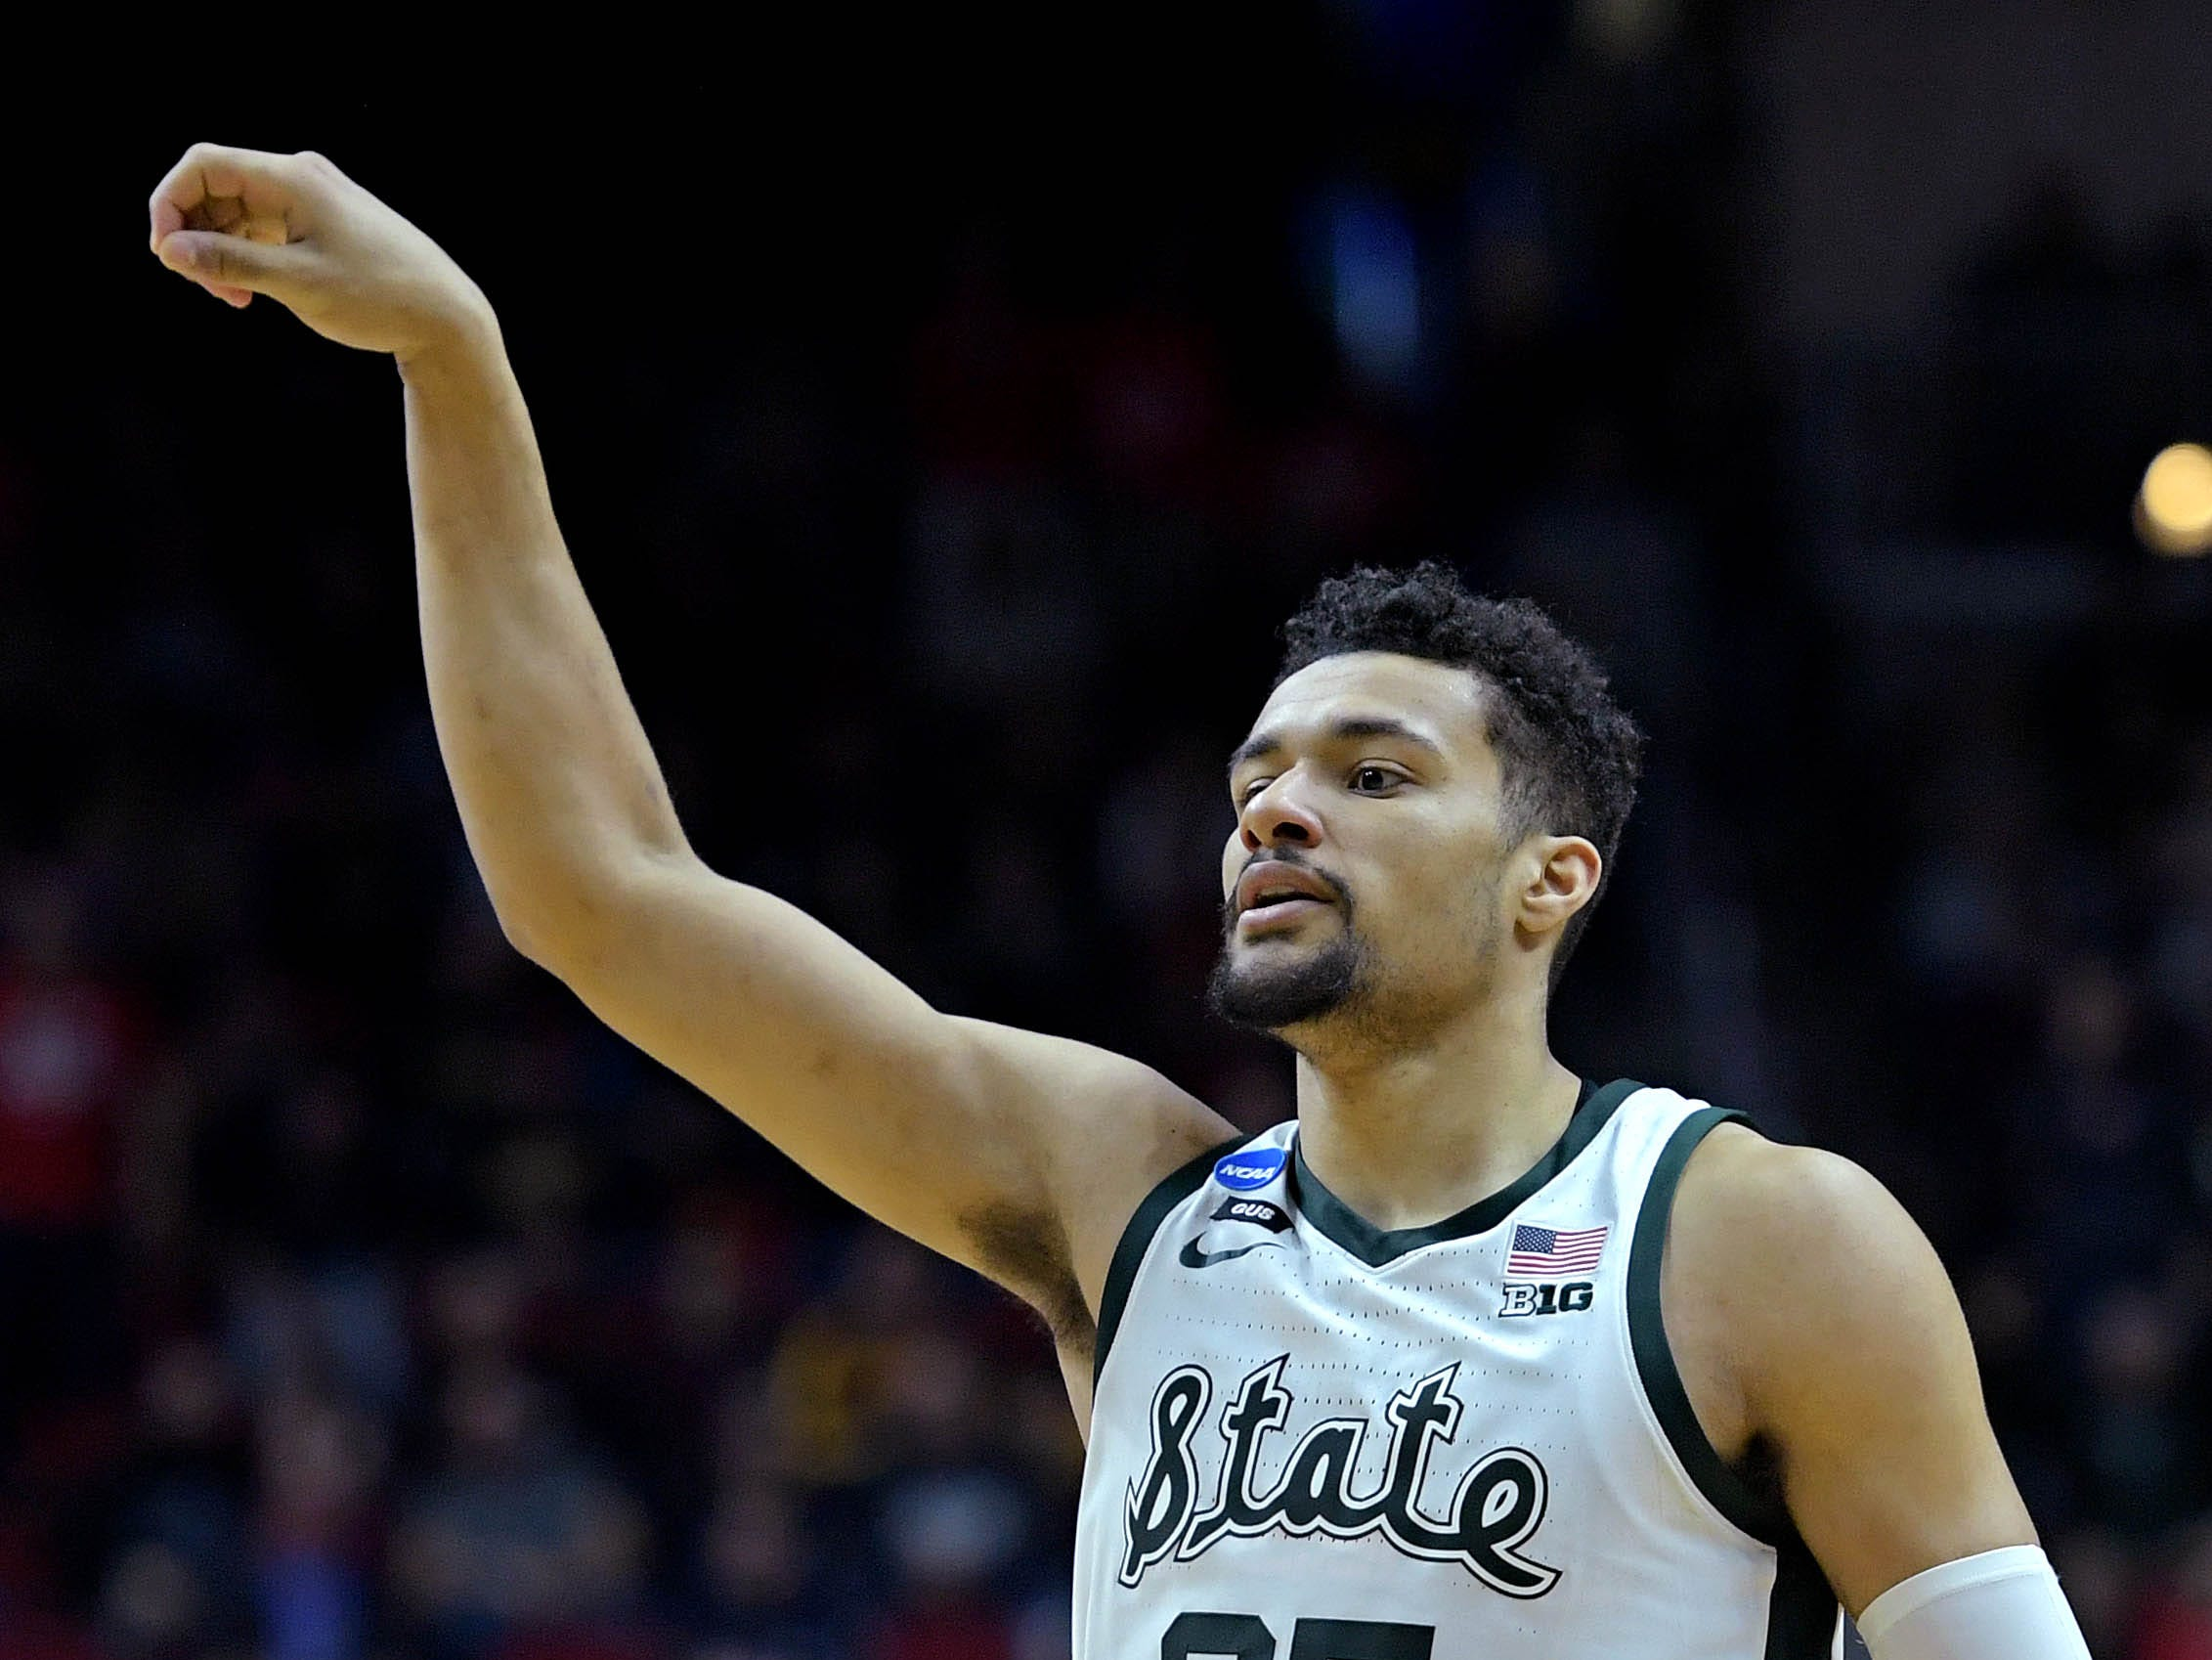 Mar 21, 2019; Des Moines, IA, United States; Michigan State Spartans forward Kenny Goins (25) reacts after a play during the second half against the Bradley Braves in the first round of the 2019 NCAA Tournament at Wells Fargo Arena. Mandatory Credit: Steven Branscombe-USA TODAY Sports